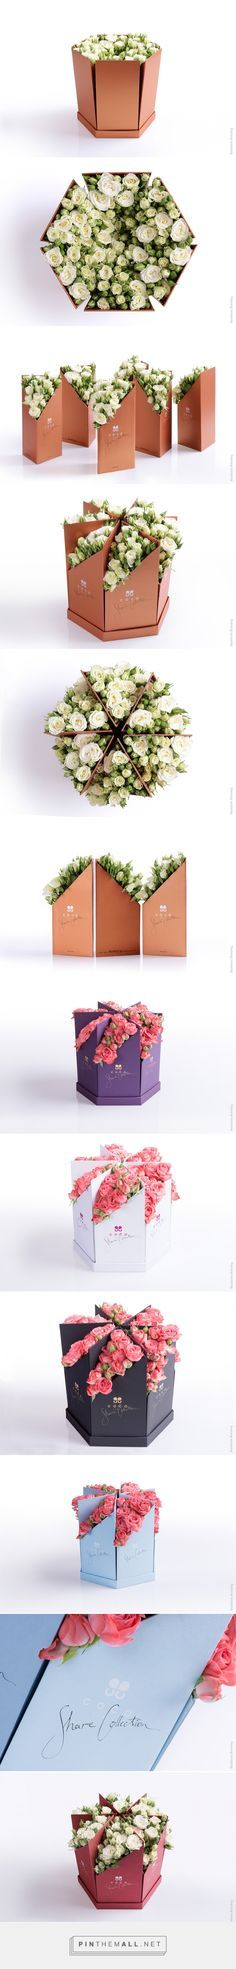 "Calligraphy, graphic design and packaging for Coco Fiori ""Share Collection"" on Behance by Backbone Branding Yervan, Armenia curated by Packaging Diva PD. A big bouquet of flowers which you can share into parts and present a piece of beauty to the people you love."